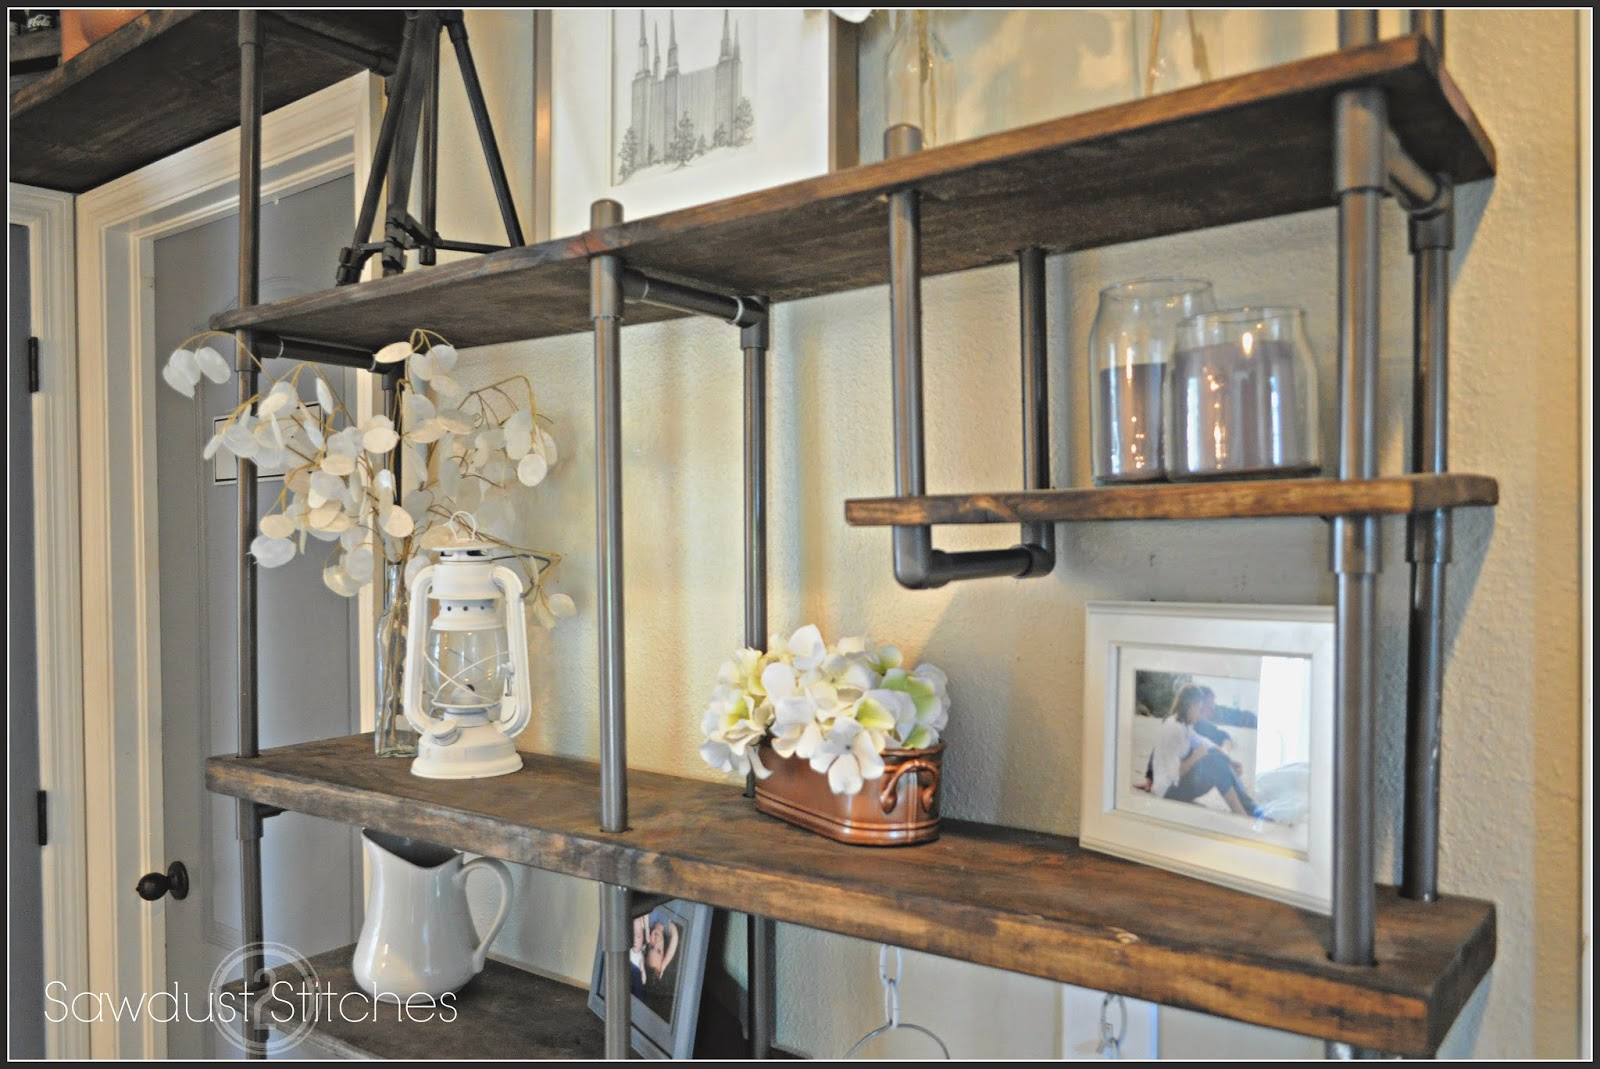 remodelaholic build a budget friendly industrial shelf using pvc pipe. Black Bedroom Furniture Sets. Home Design Ideas